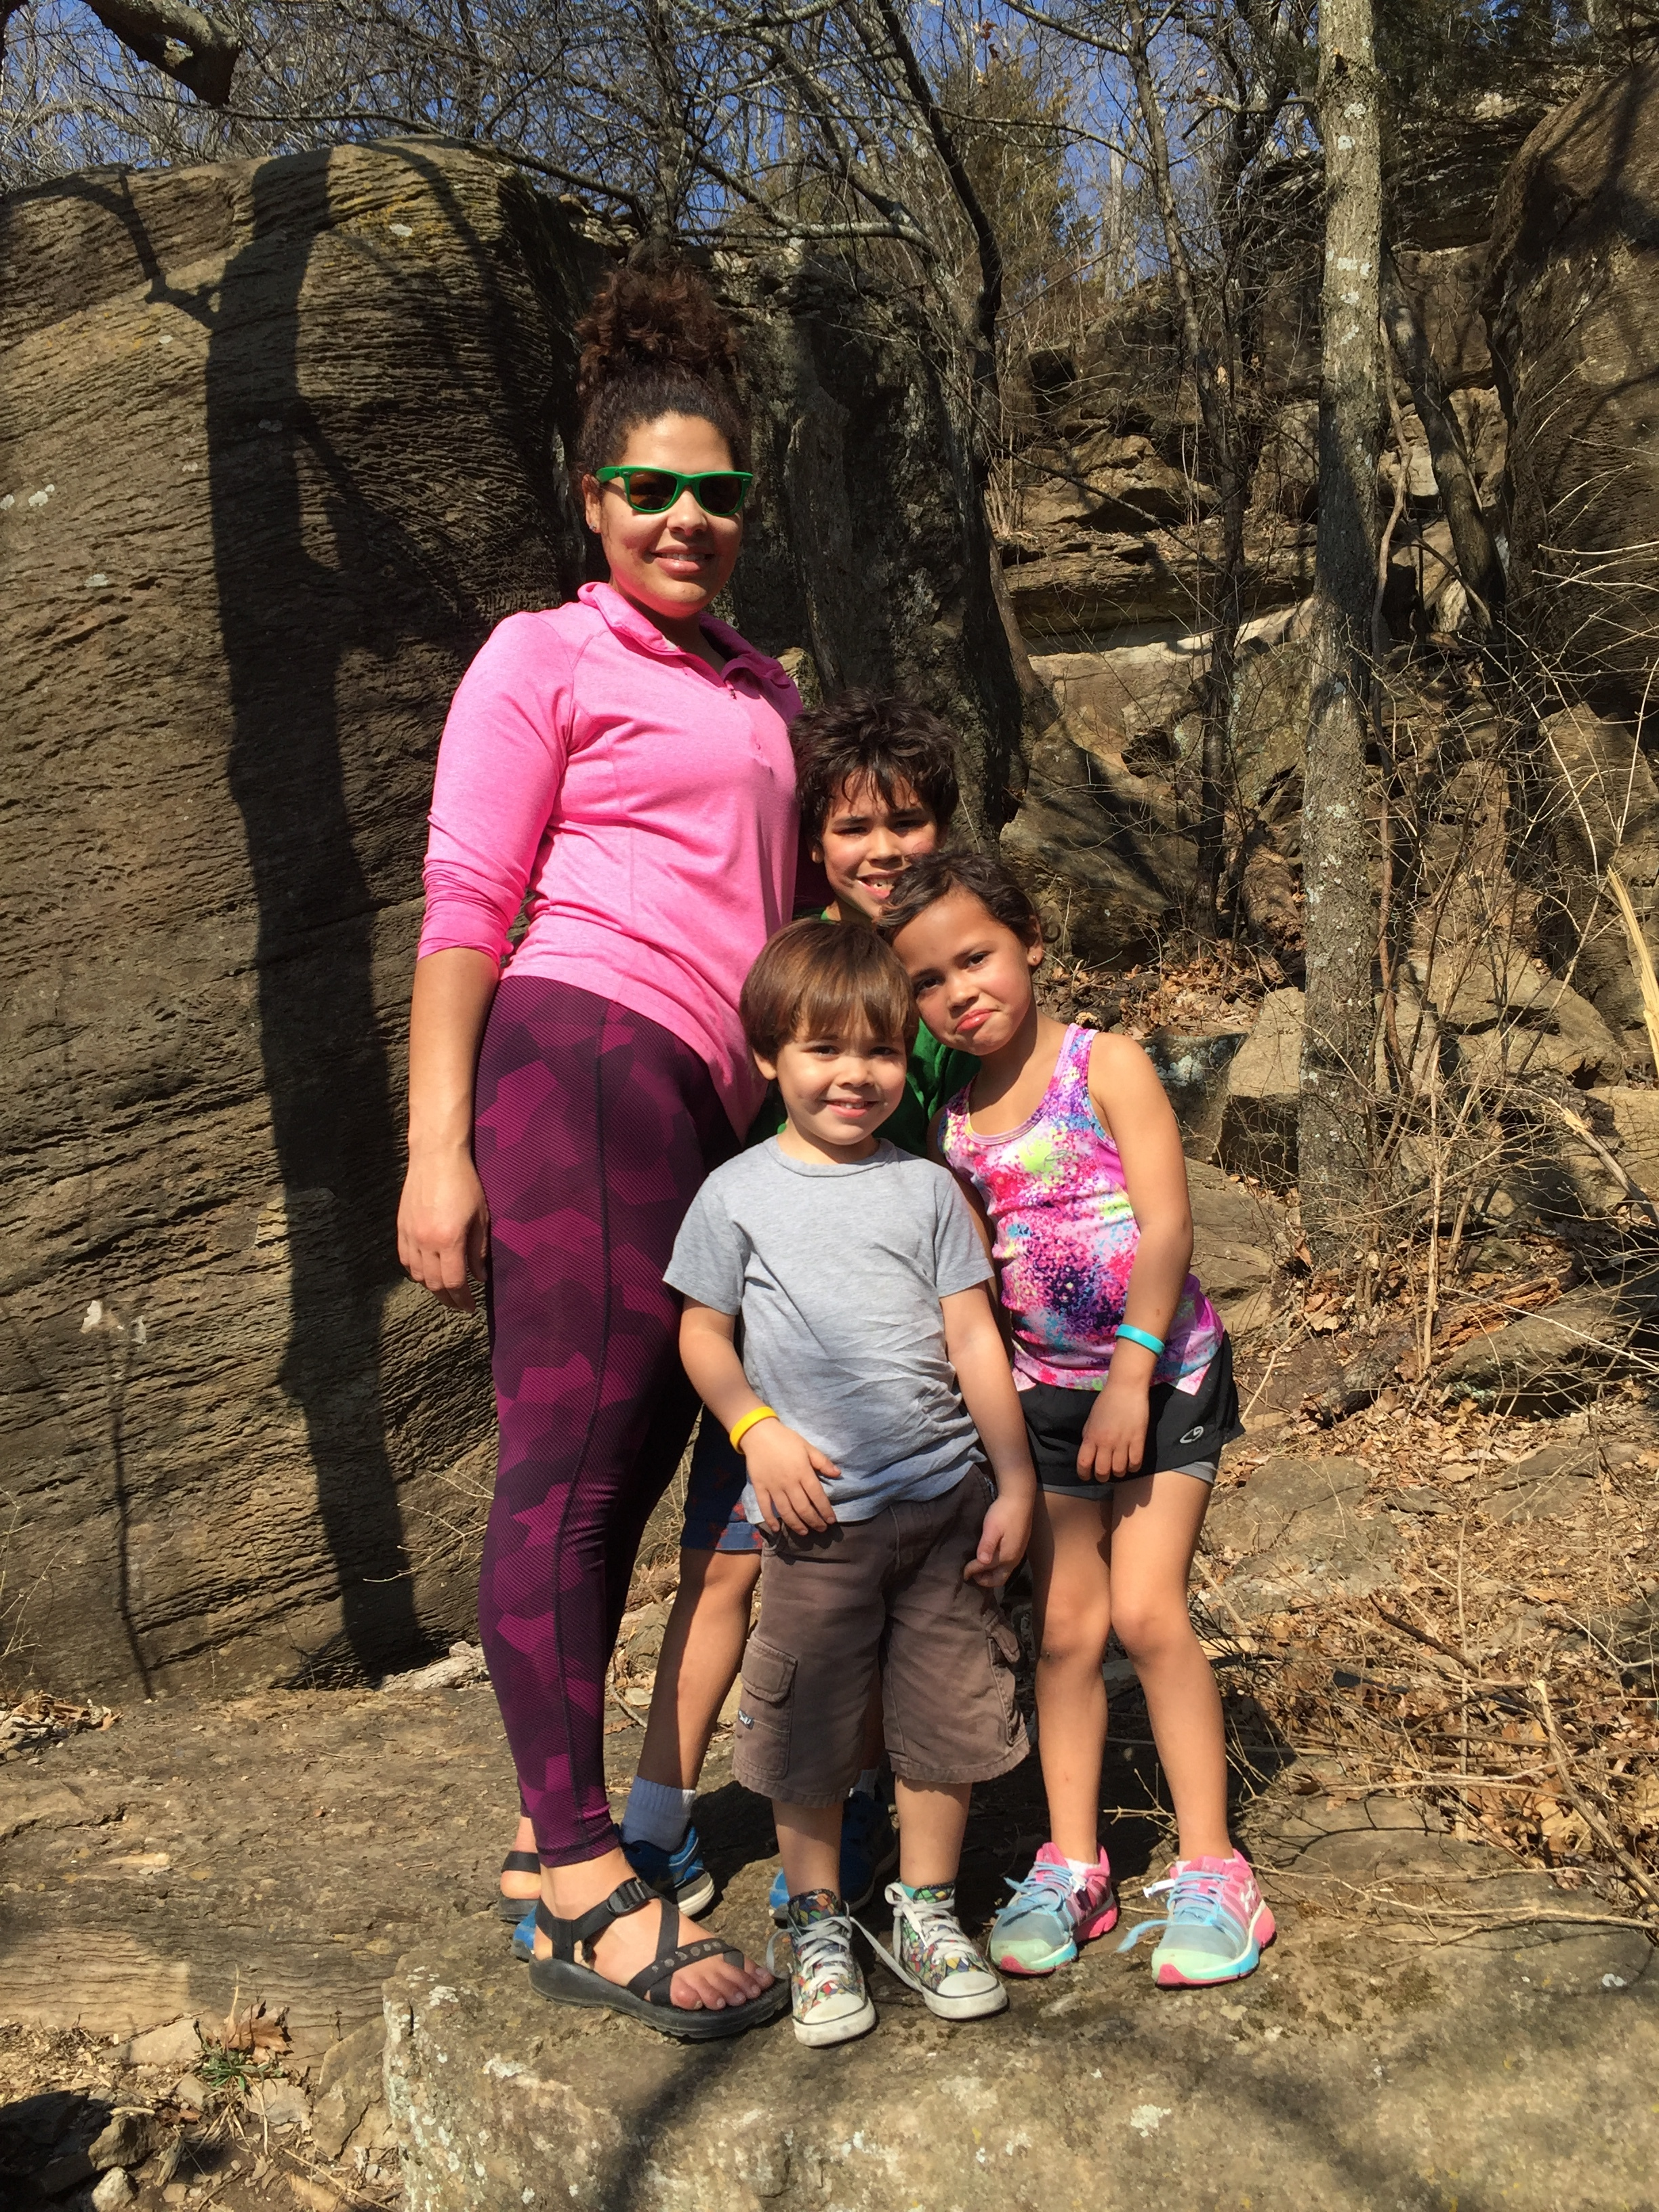 Jasmine Banks, now free from the symptoms of postpartum depression, enjoys a hike with her children Isaiah, Addison and Tobias.